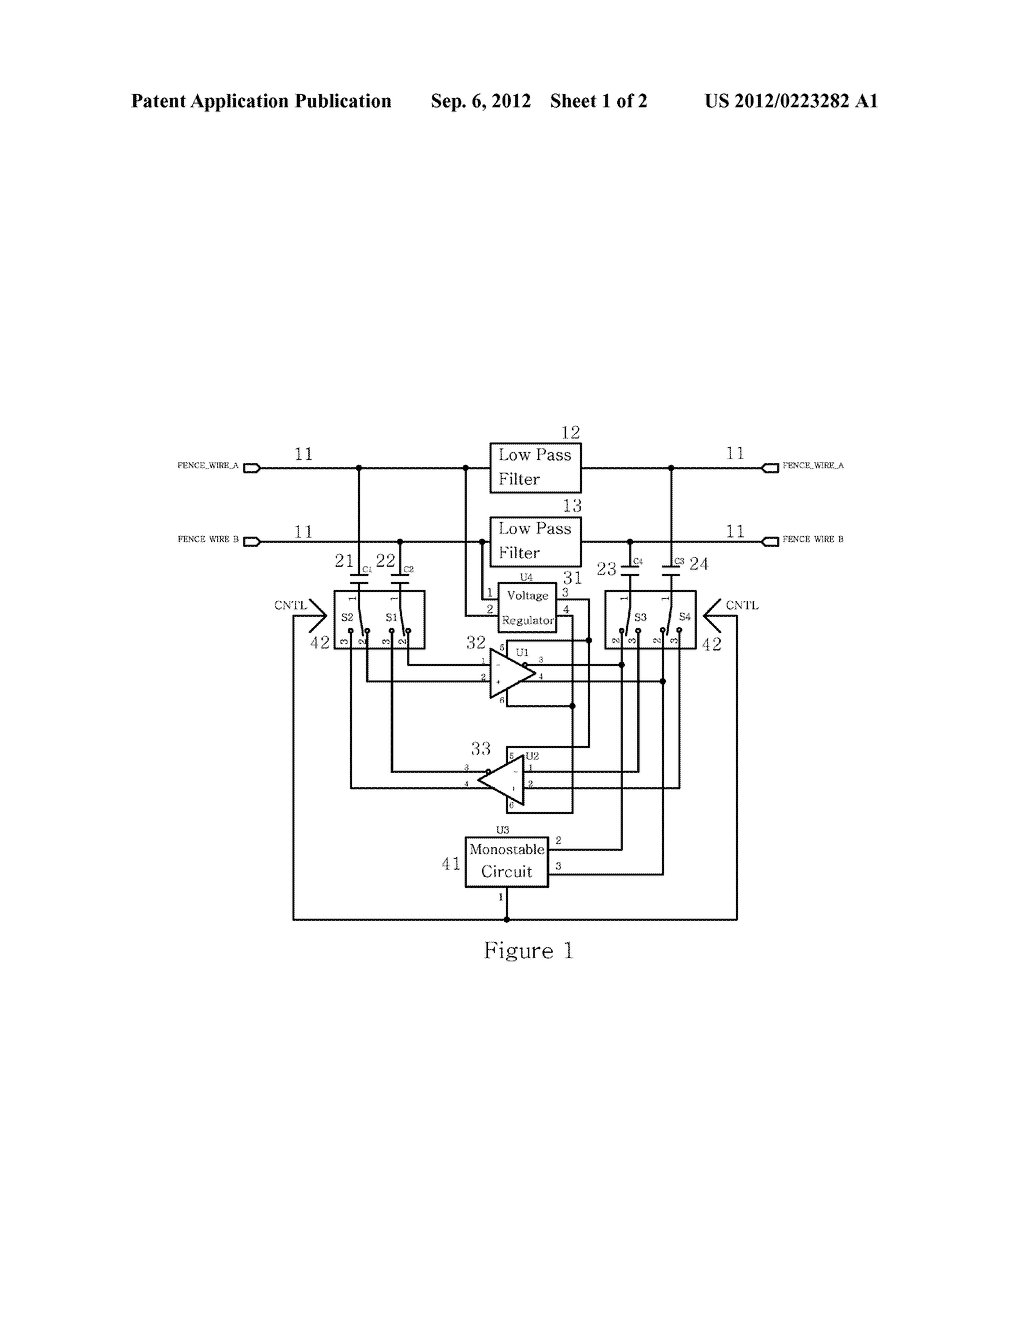 In Line Signal Repeaters For Transmission Based Electric Fences Fence Wire Diagram Schematic And Image 02